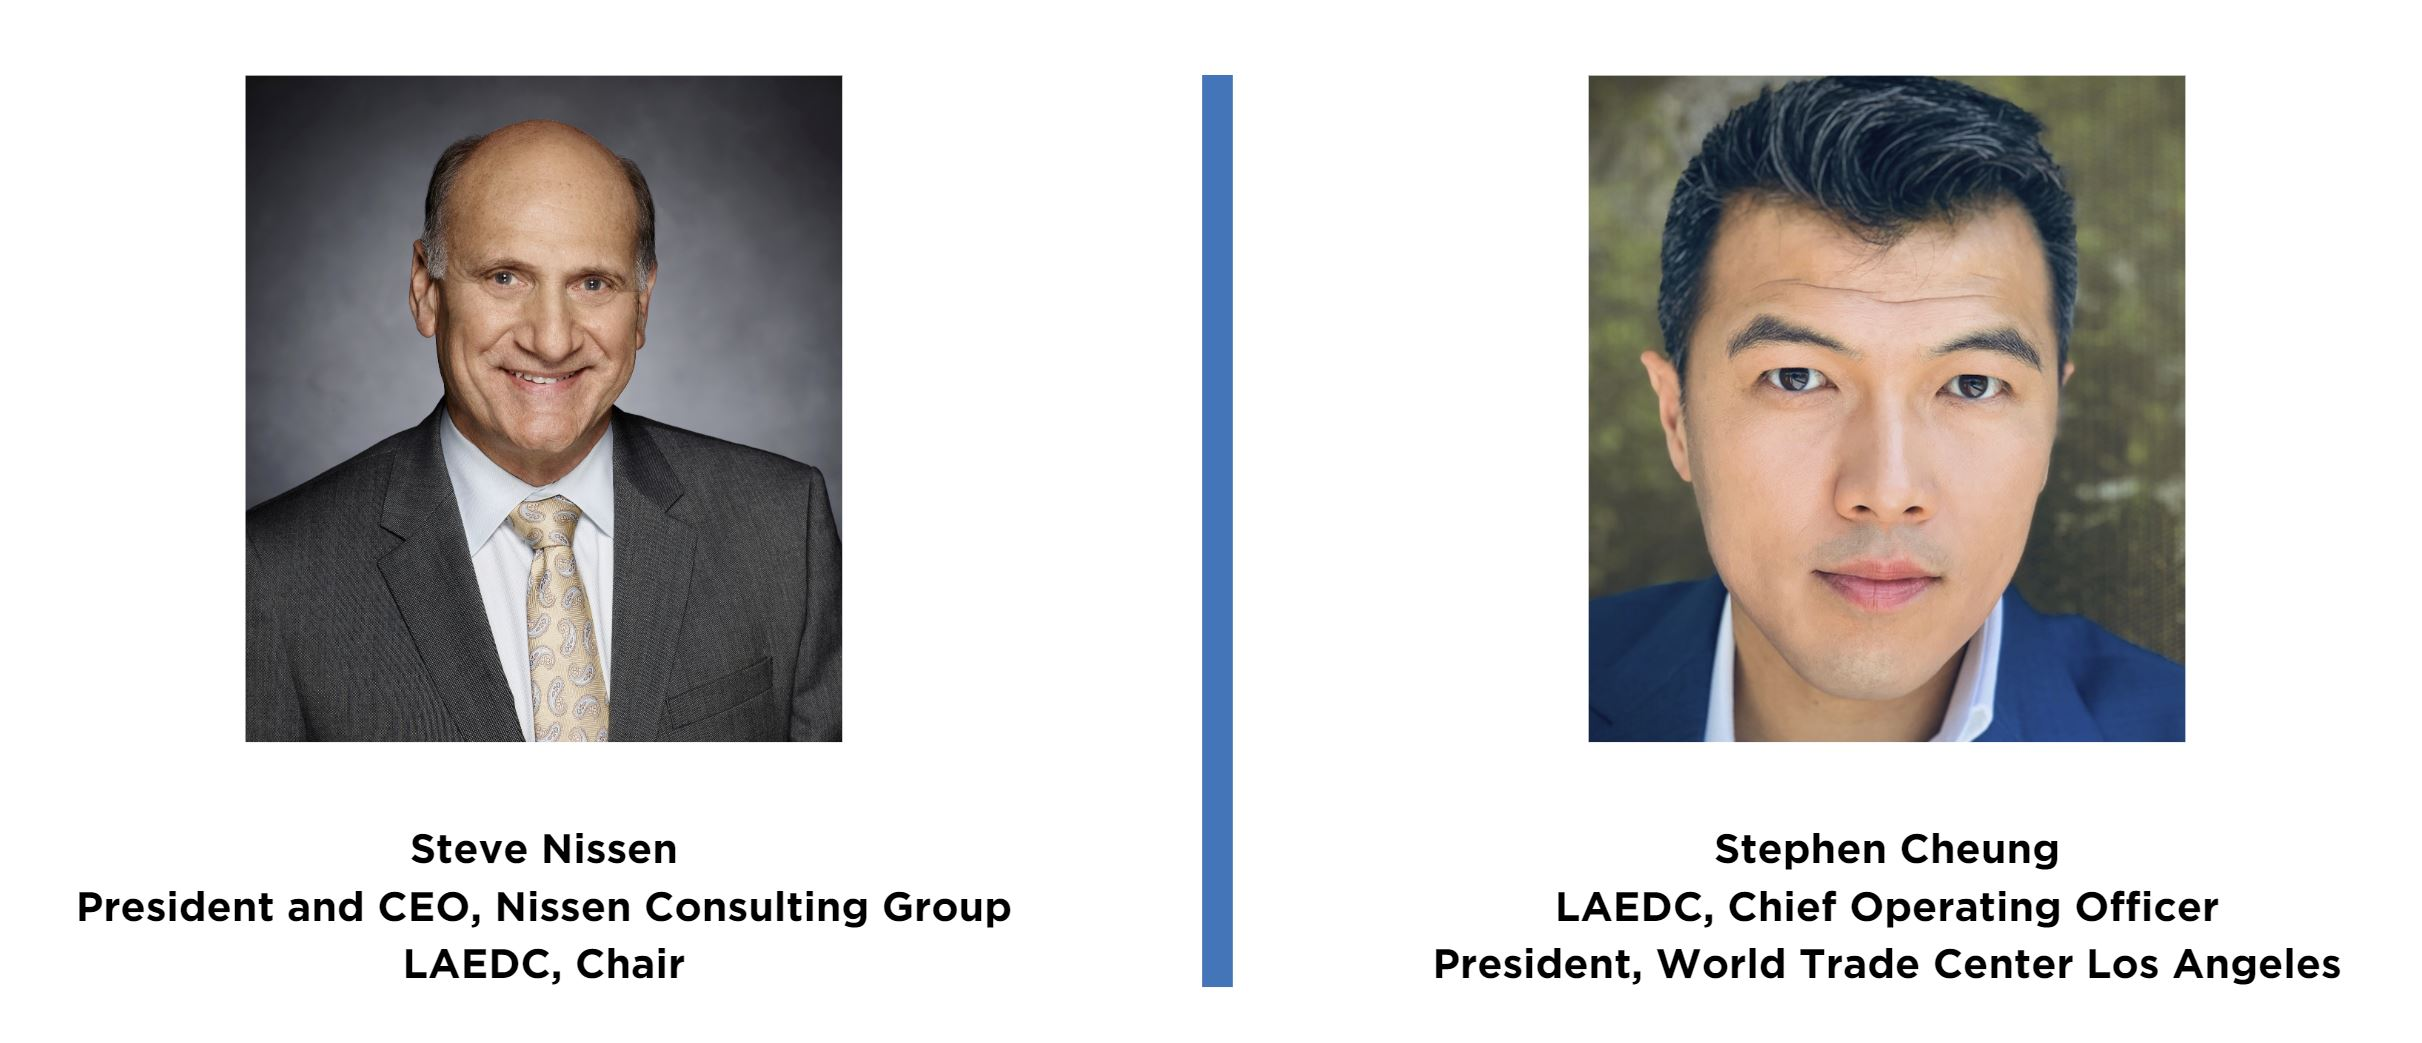 LAEDC Welcomes New Chair Steve Nissen and Names Stephen Cheung as COO